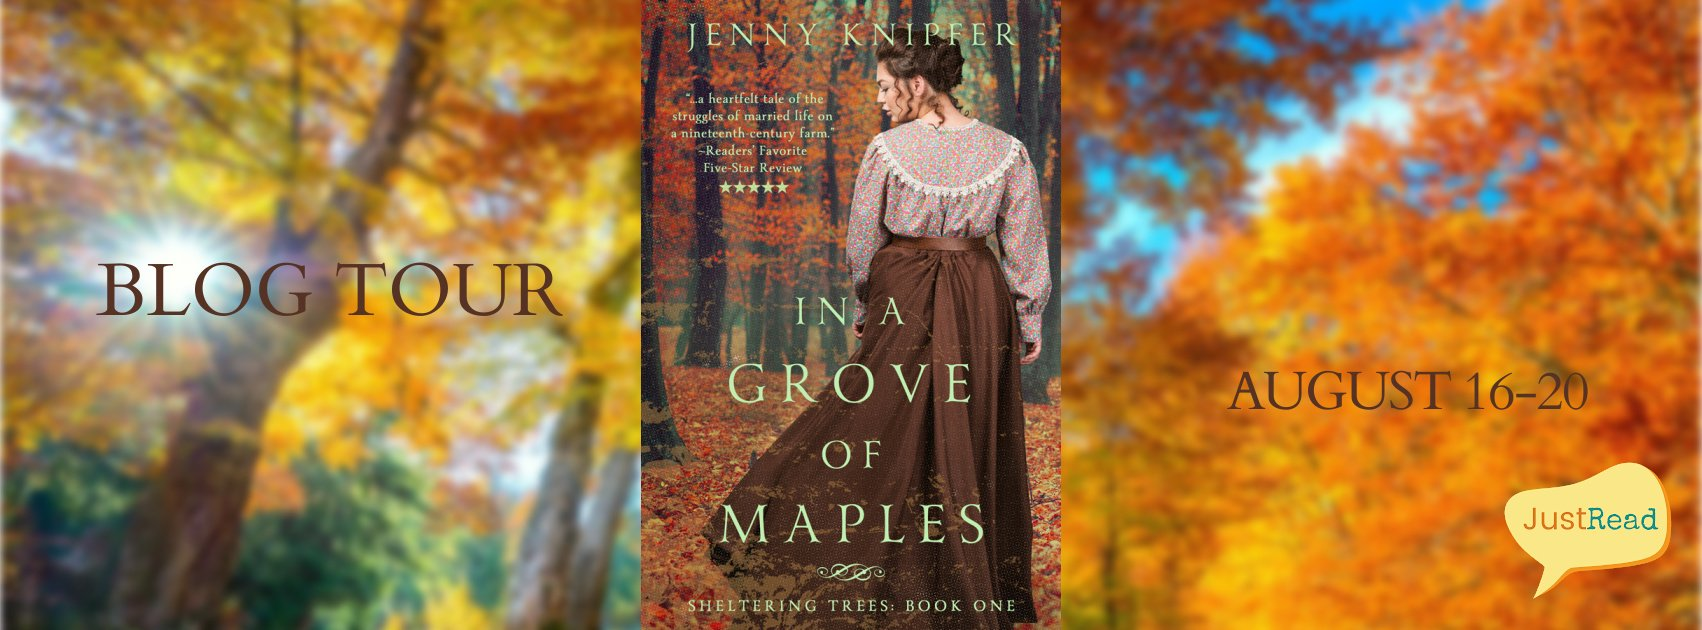 In a Grove of Maples JustRead Blog Tour